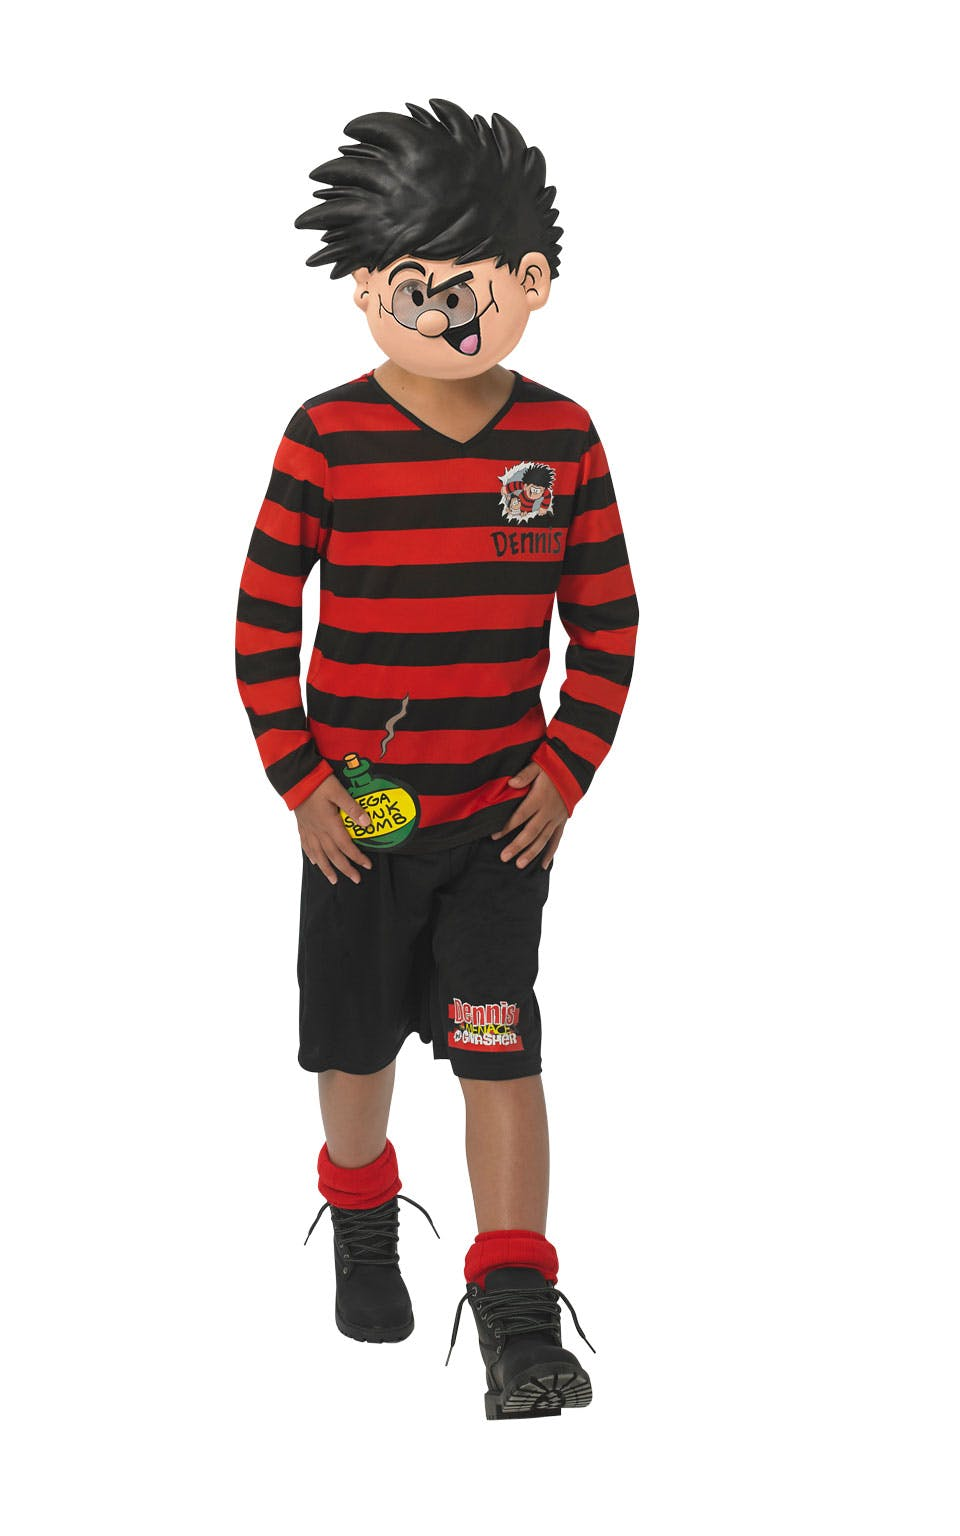 Dennis costume from Beano Shop